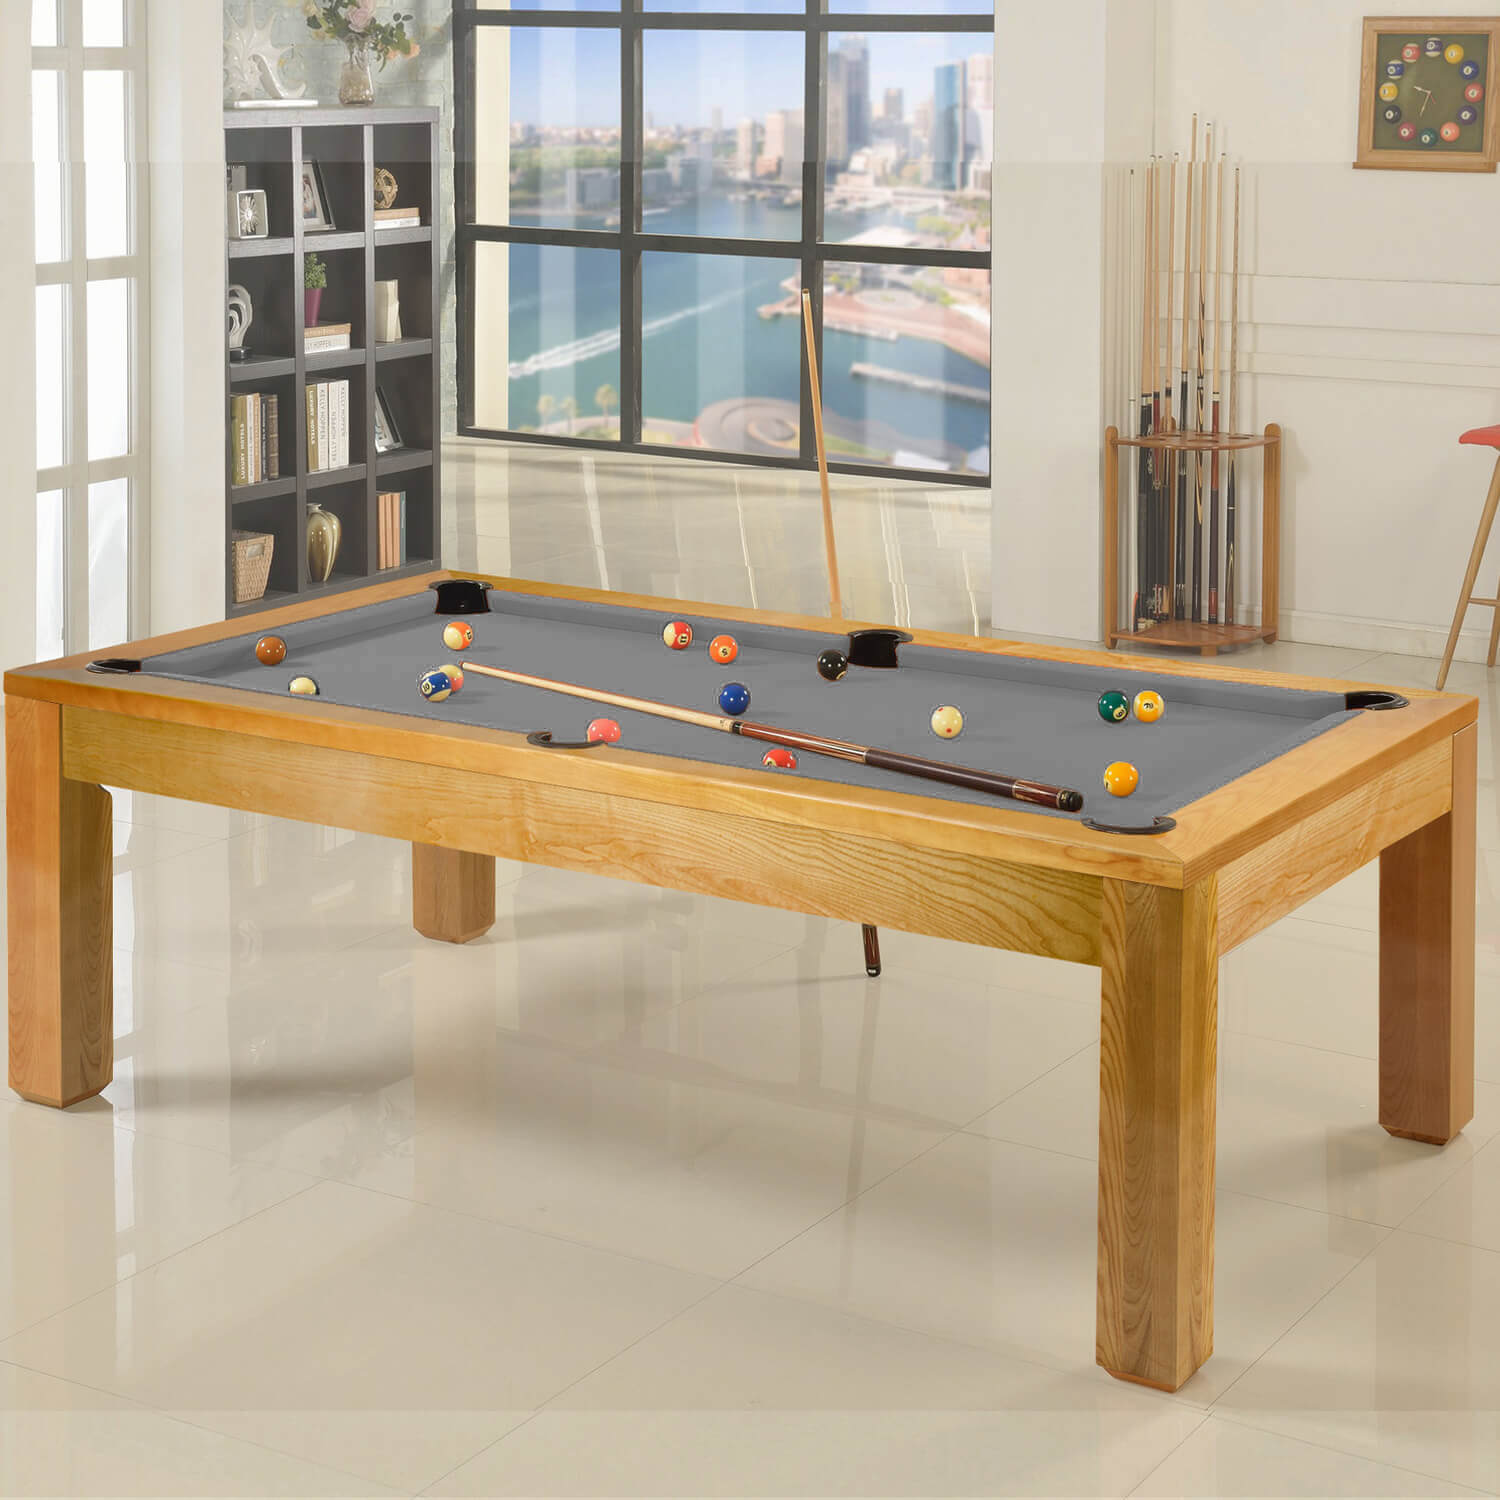 The Precision 10ft Solid Oak Slate Bed Pool Dining Table